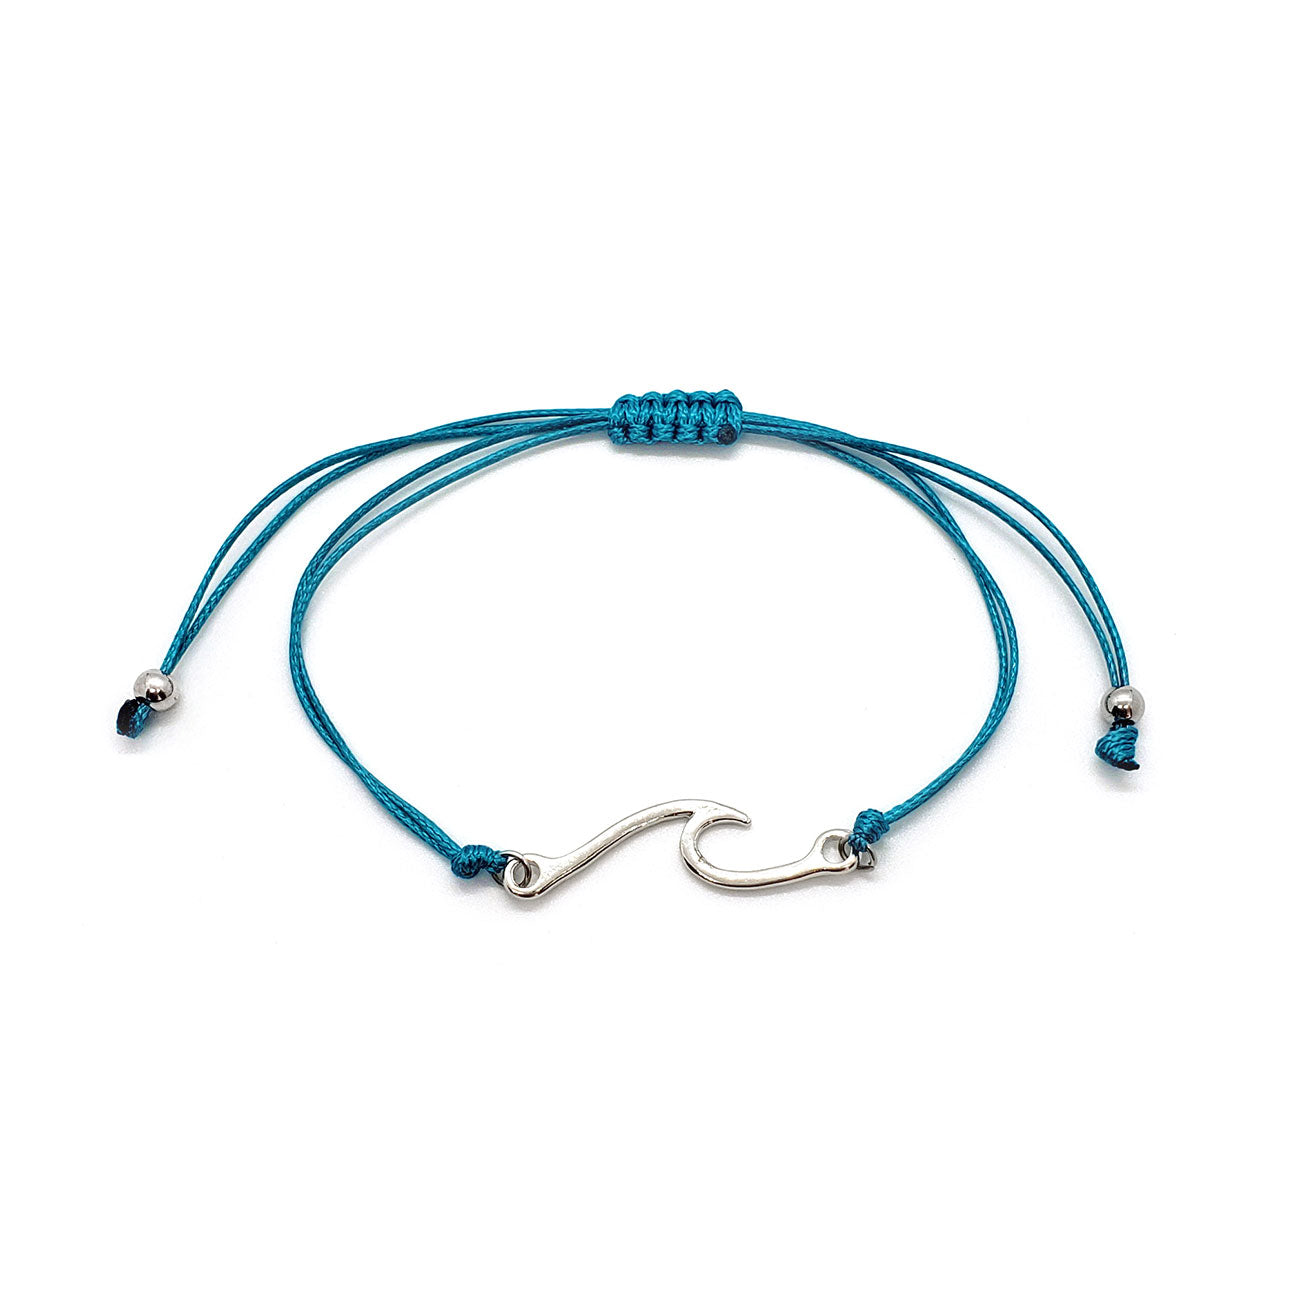 Wave Bracelet is a wave charm on aqua blue cord. Can be stacked or worn solo. Made by O Yeah Gifts!